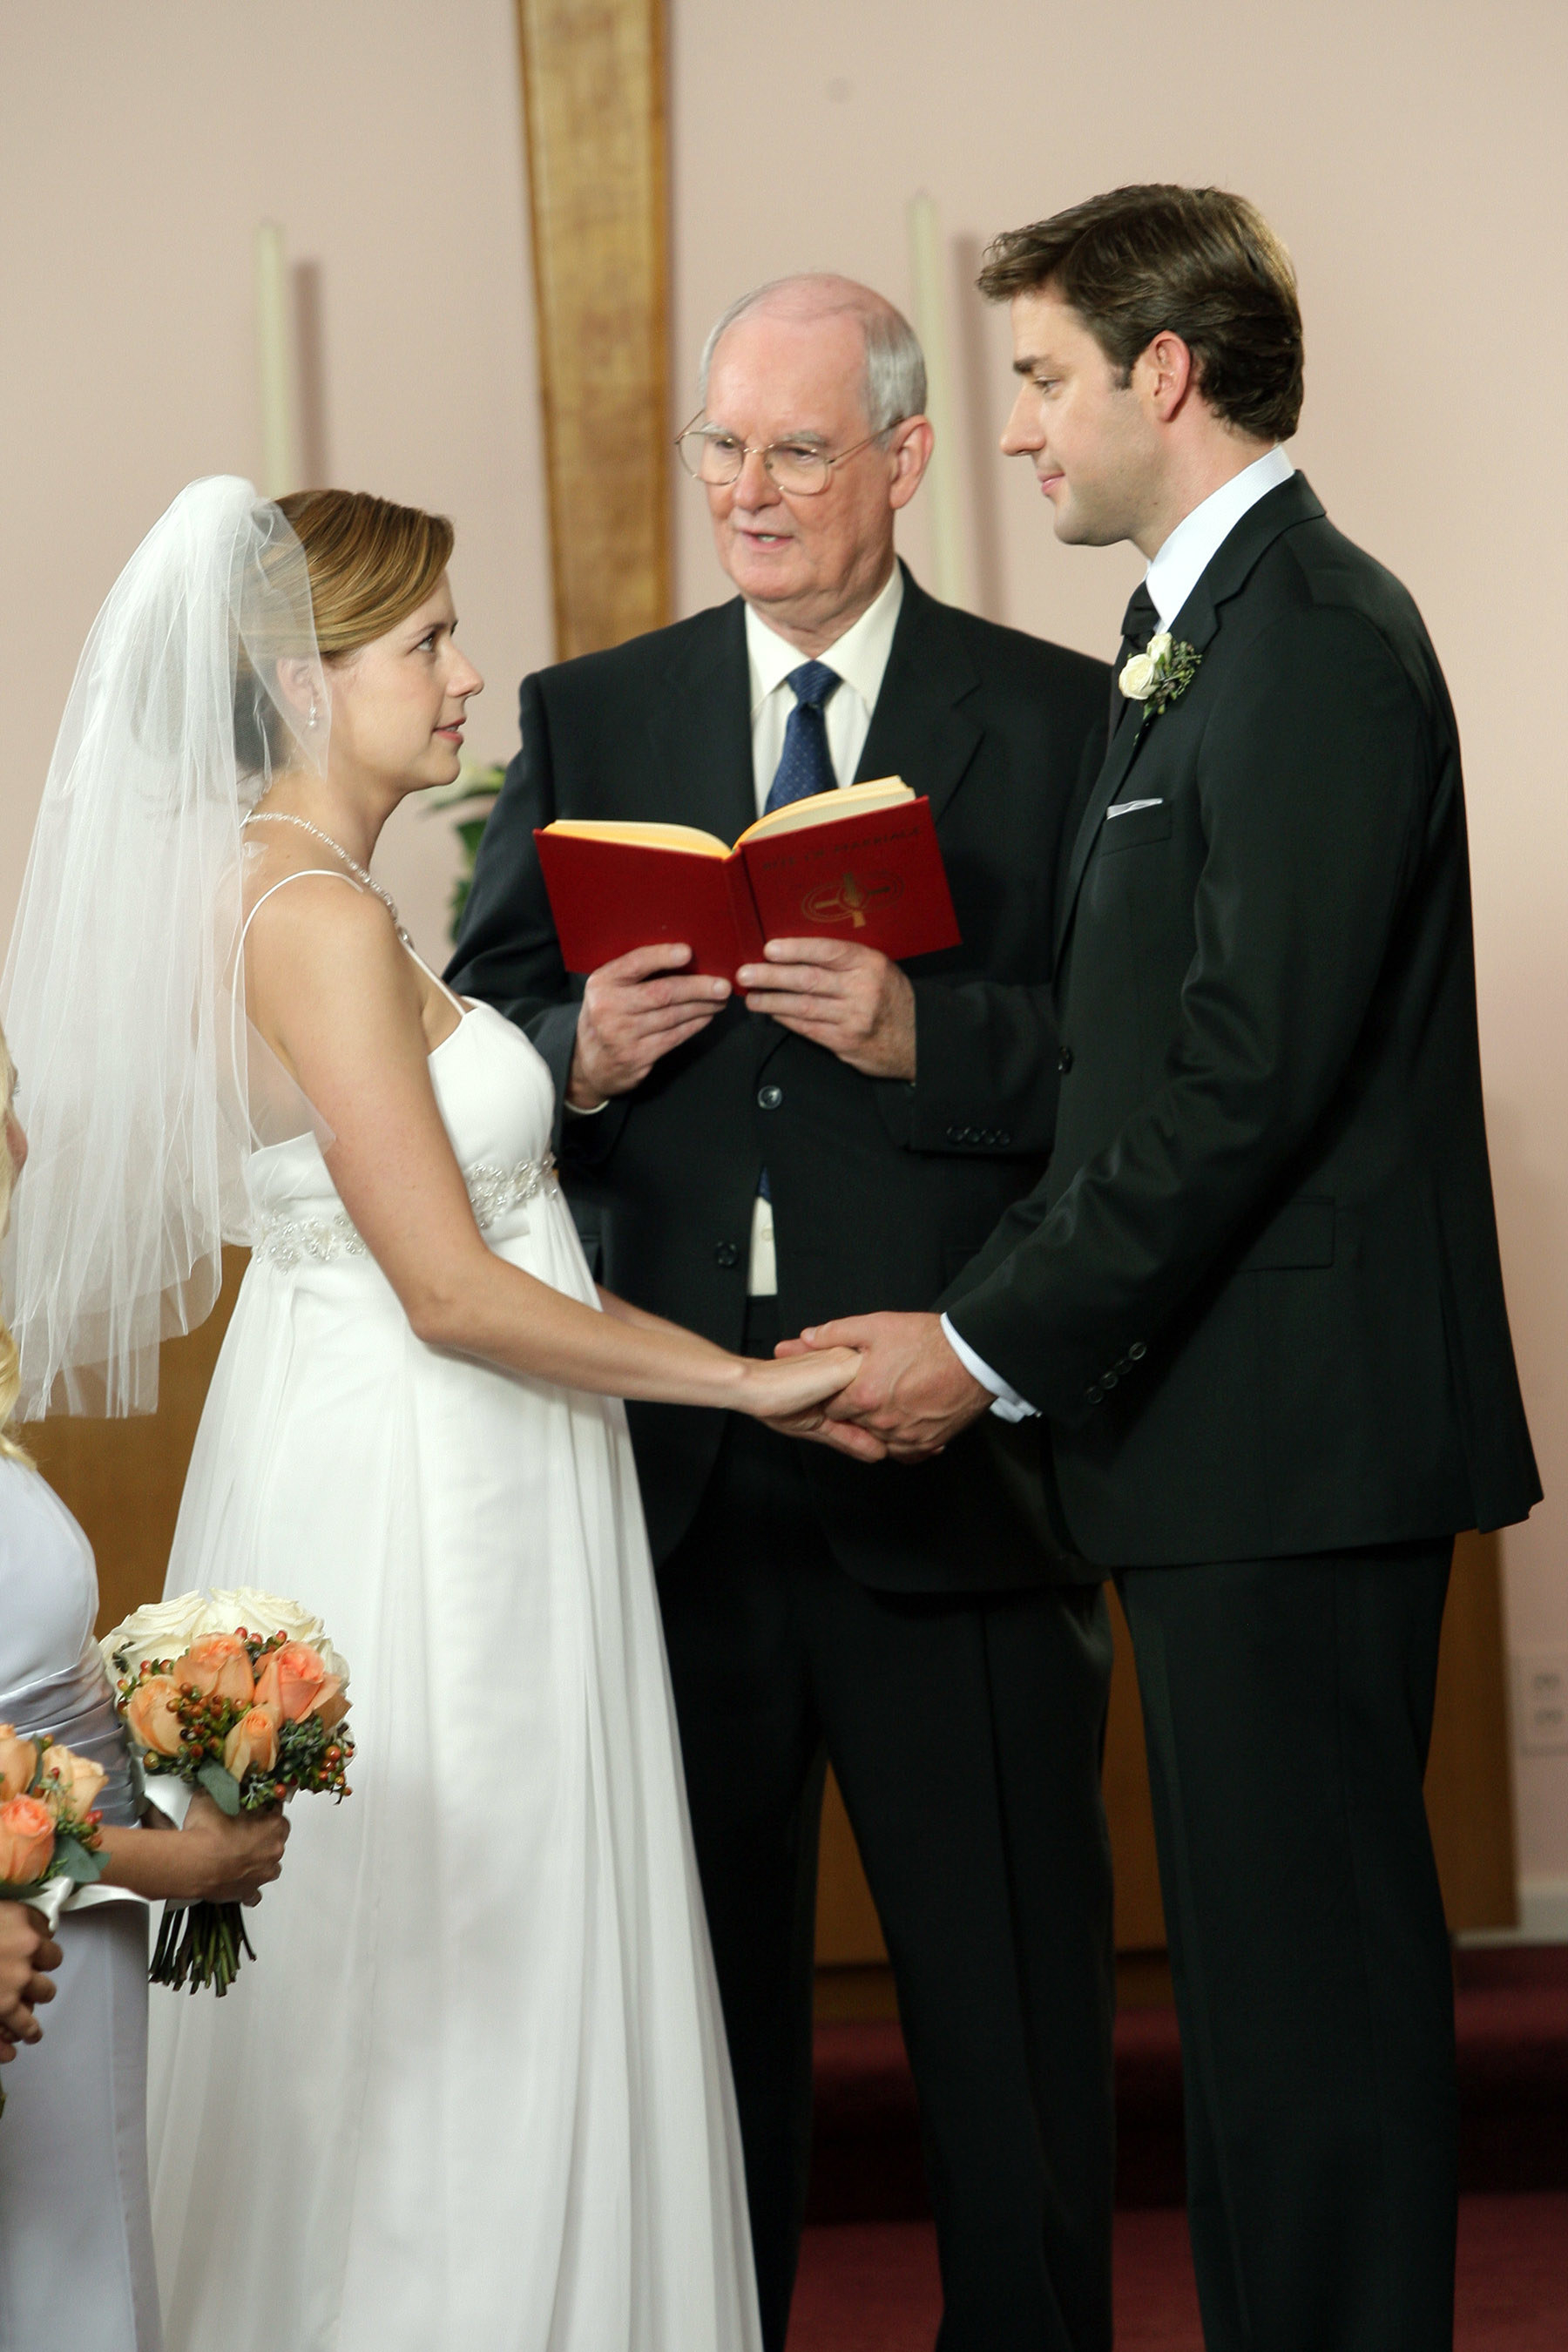 Pam and Jim getting married